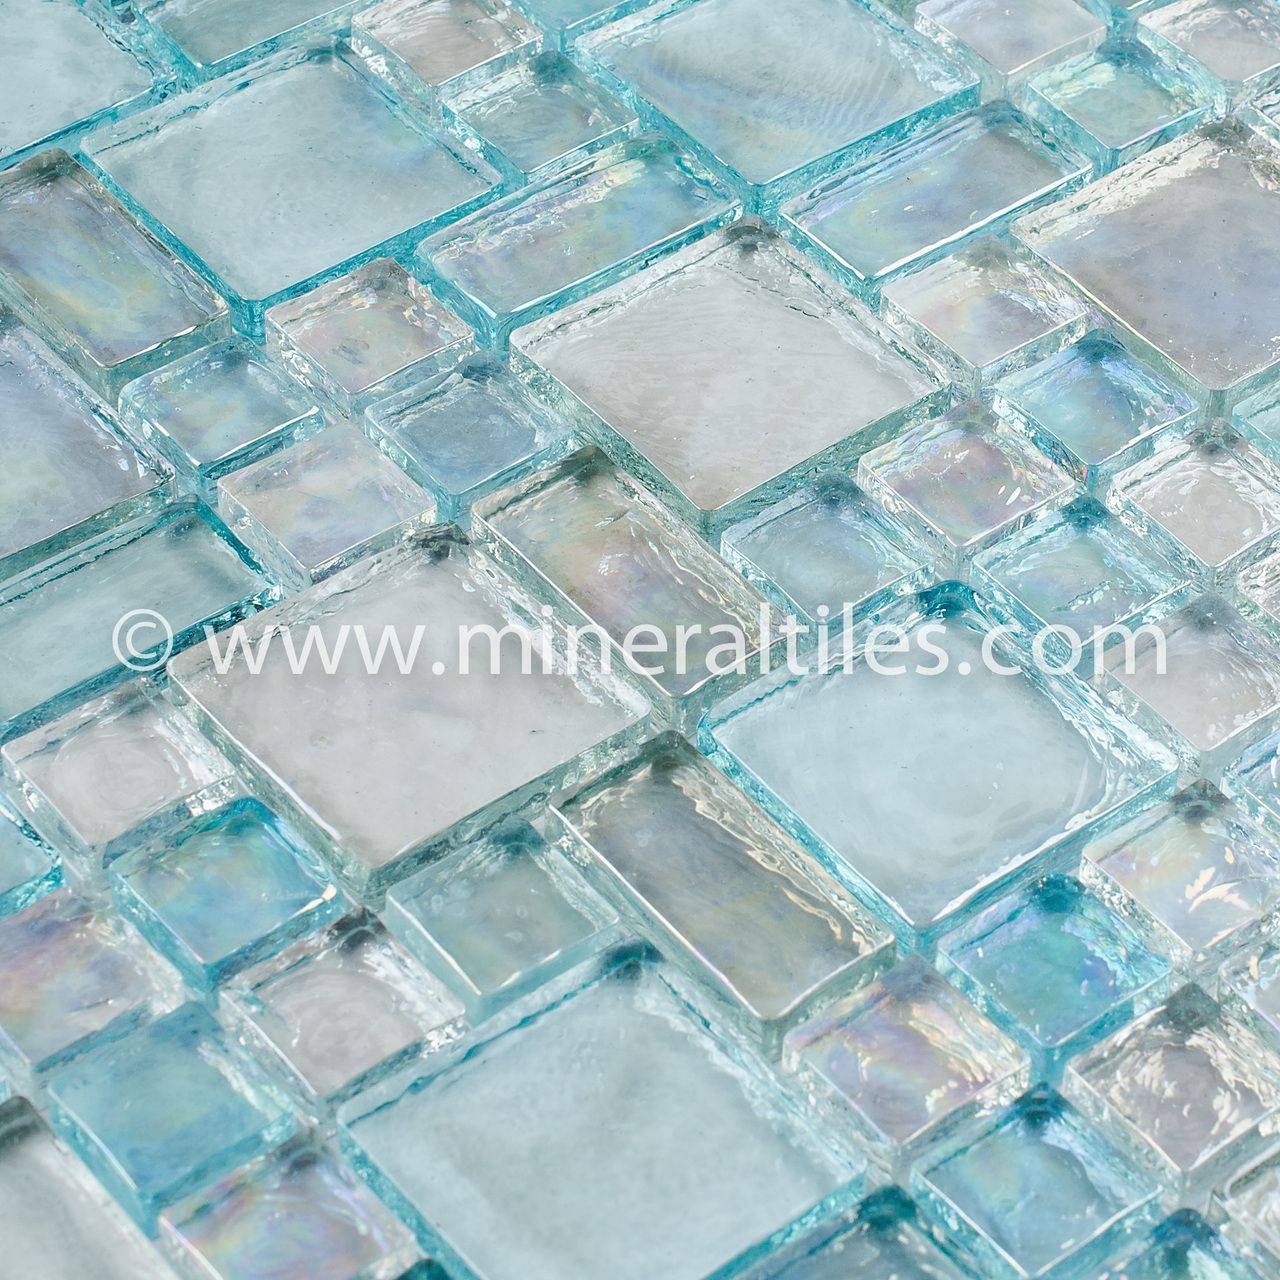 Pin by Mineral Tiles on Iridescent Glass Mosaic Tiles | Pinterest ...